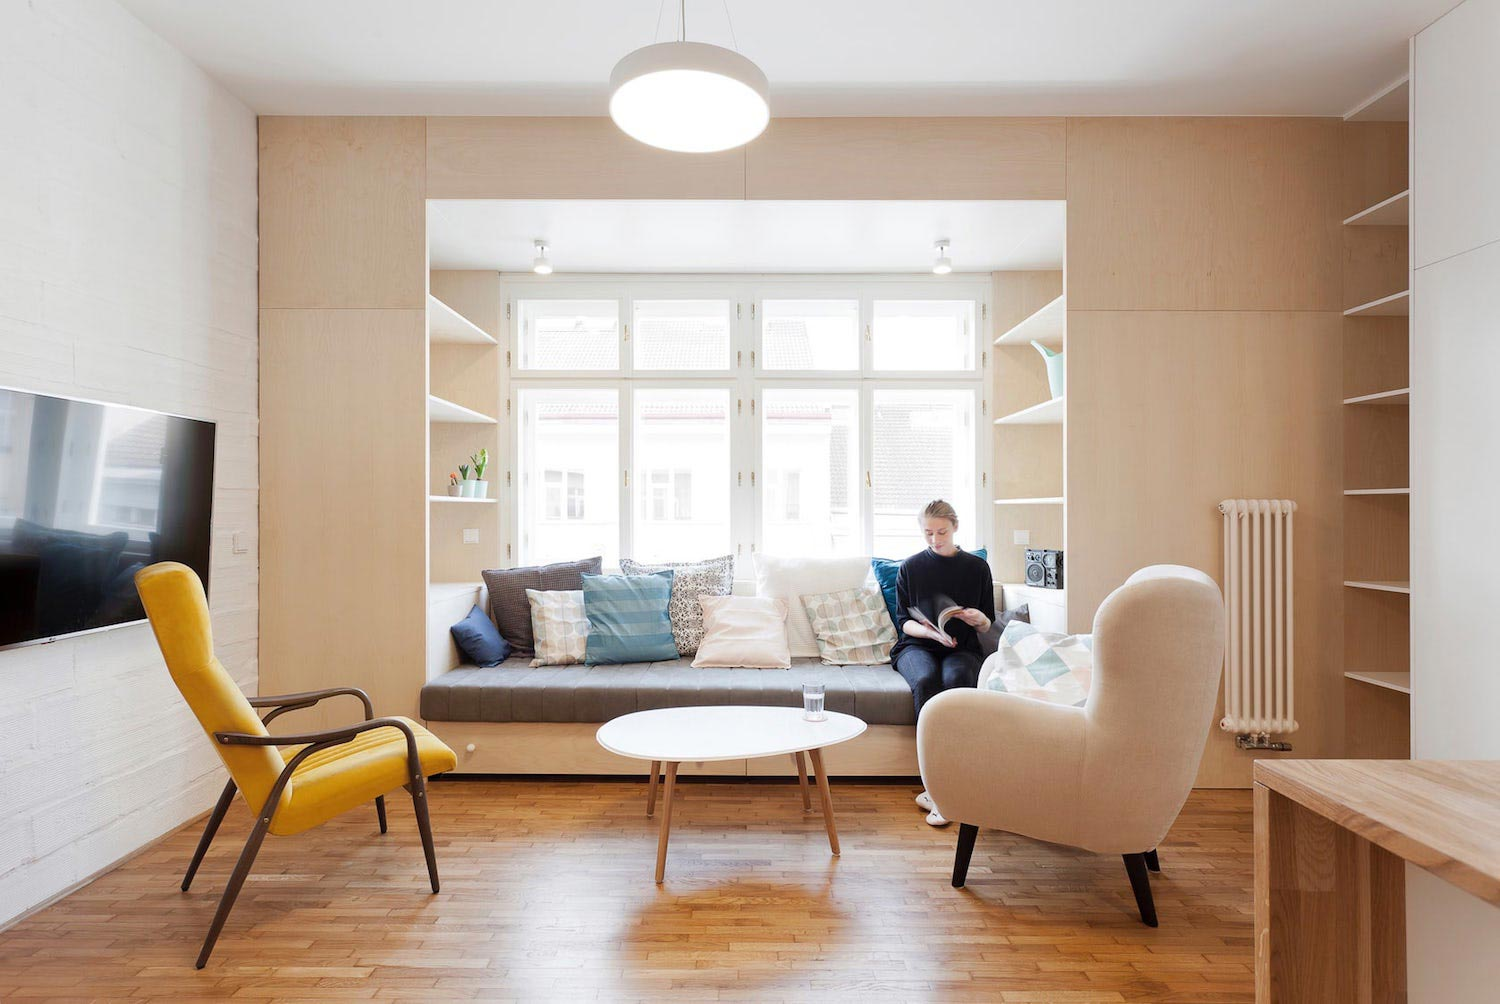 apartment-whole-interior-designed-light-natural-colour-tones-01 ...